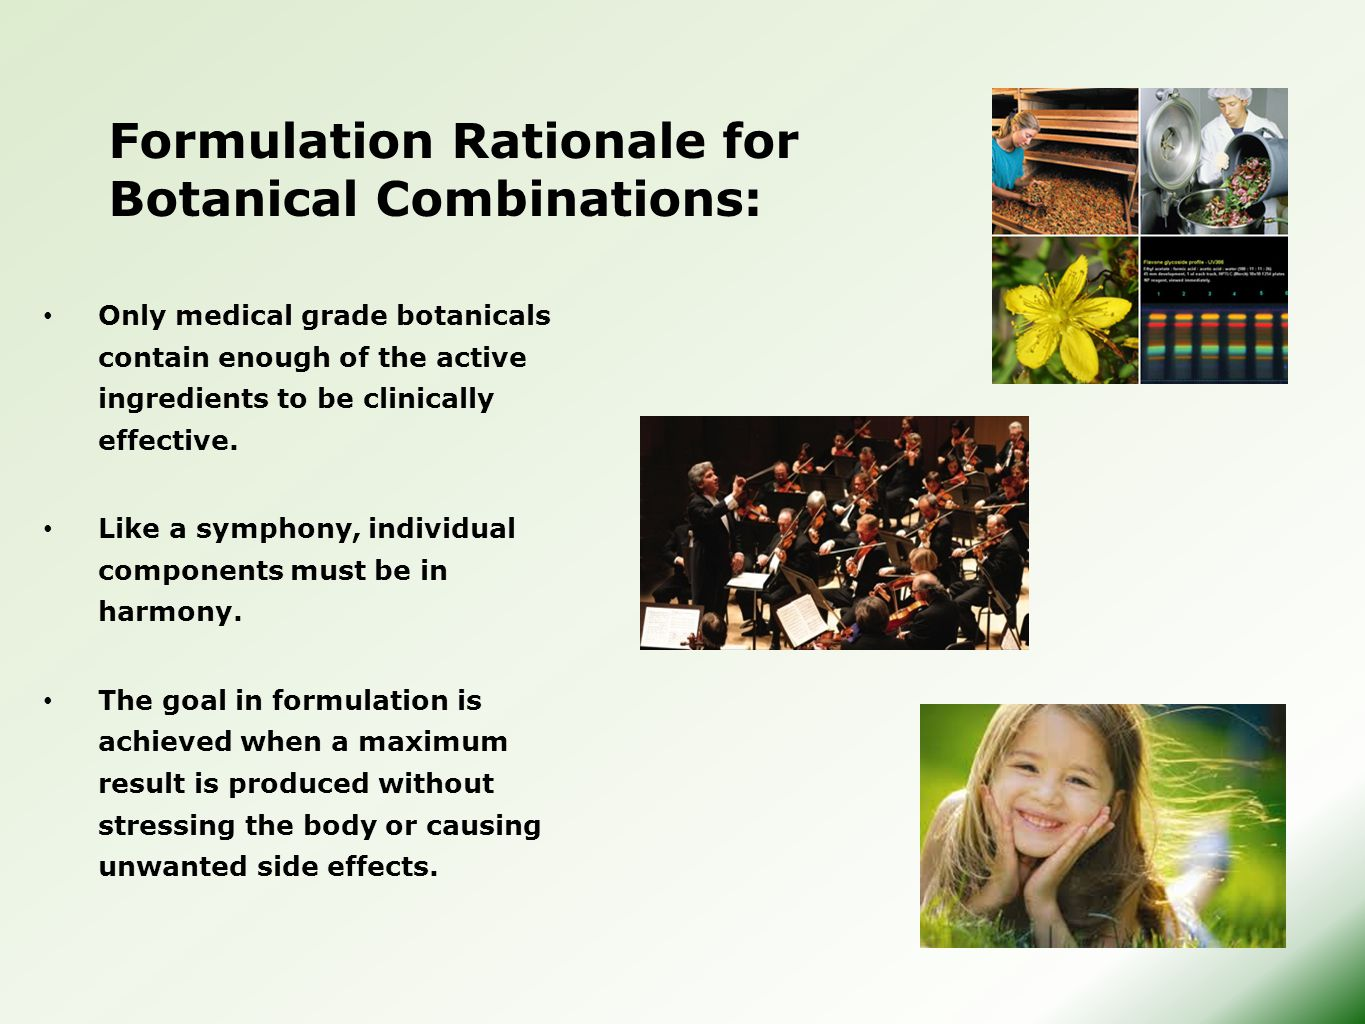 Formulation Rationale for Botanical Combinations: